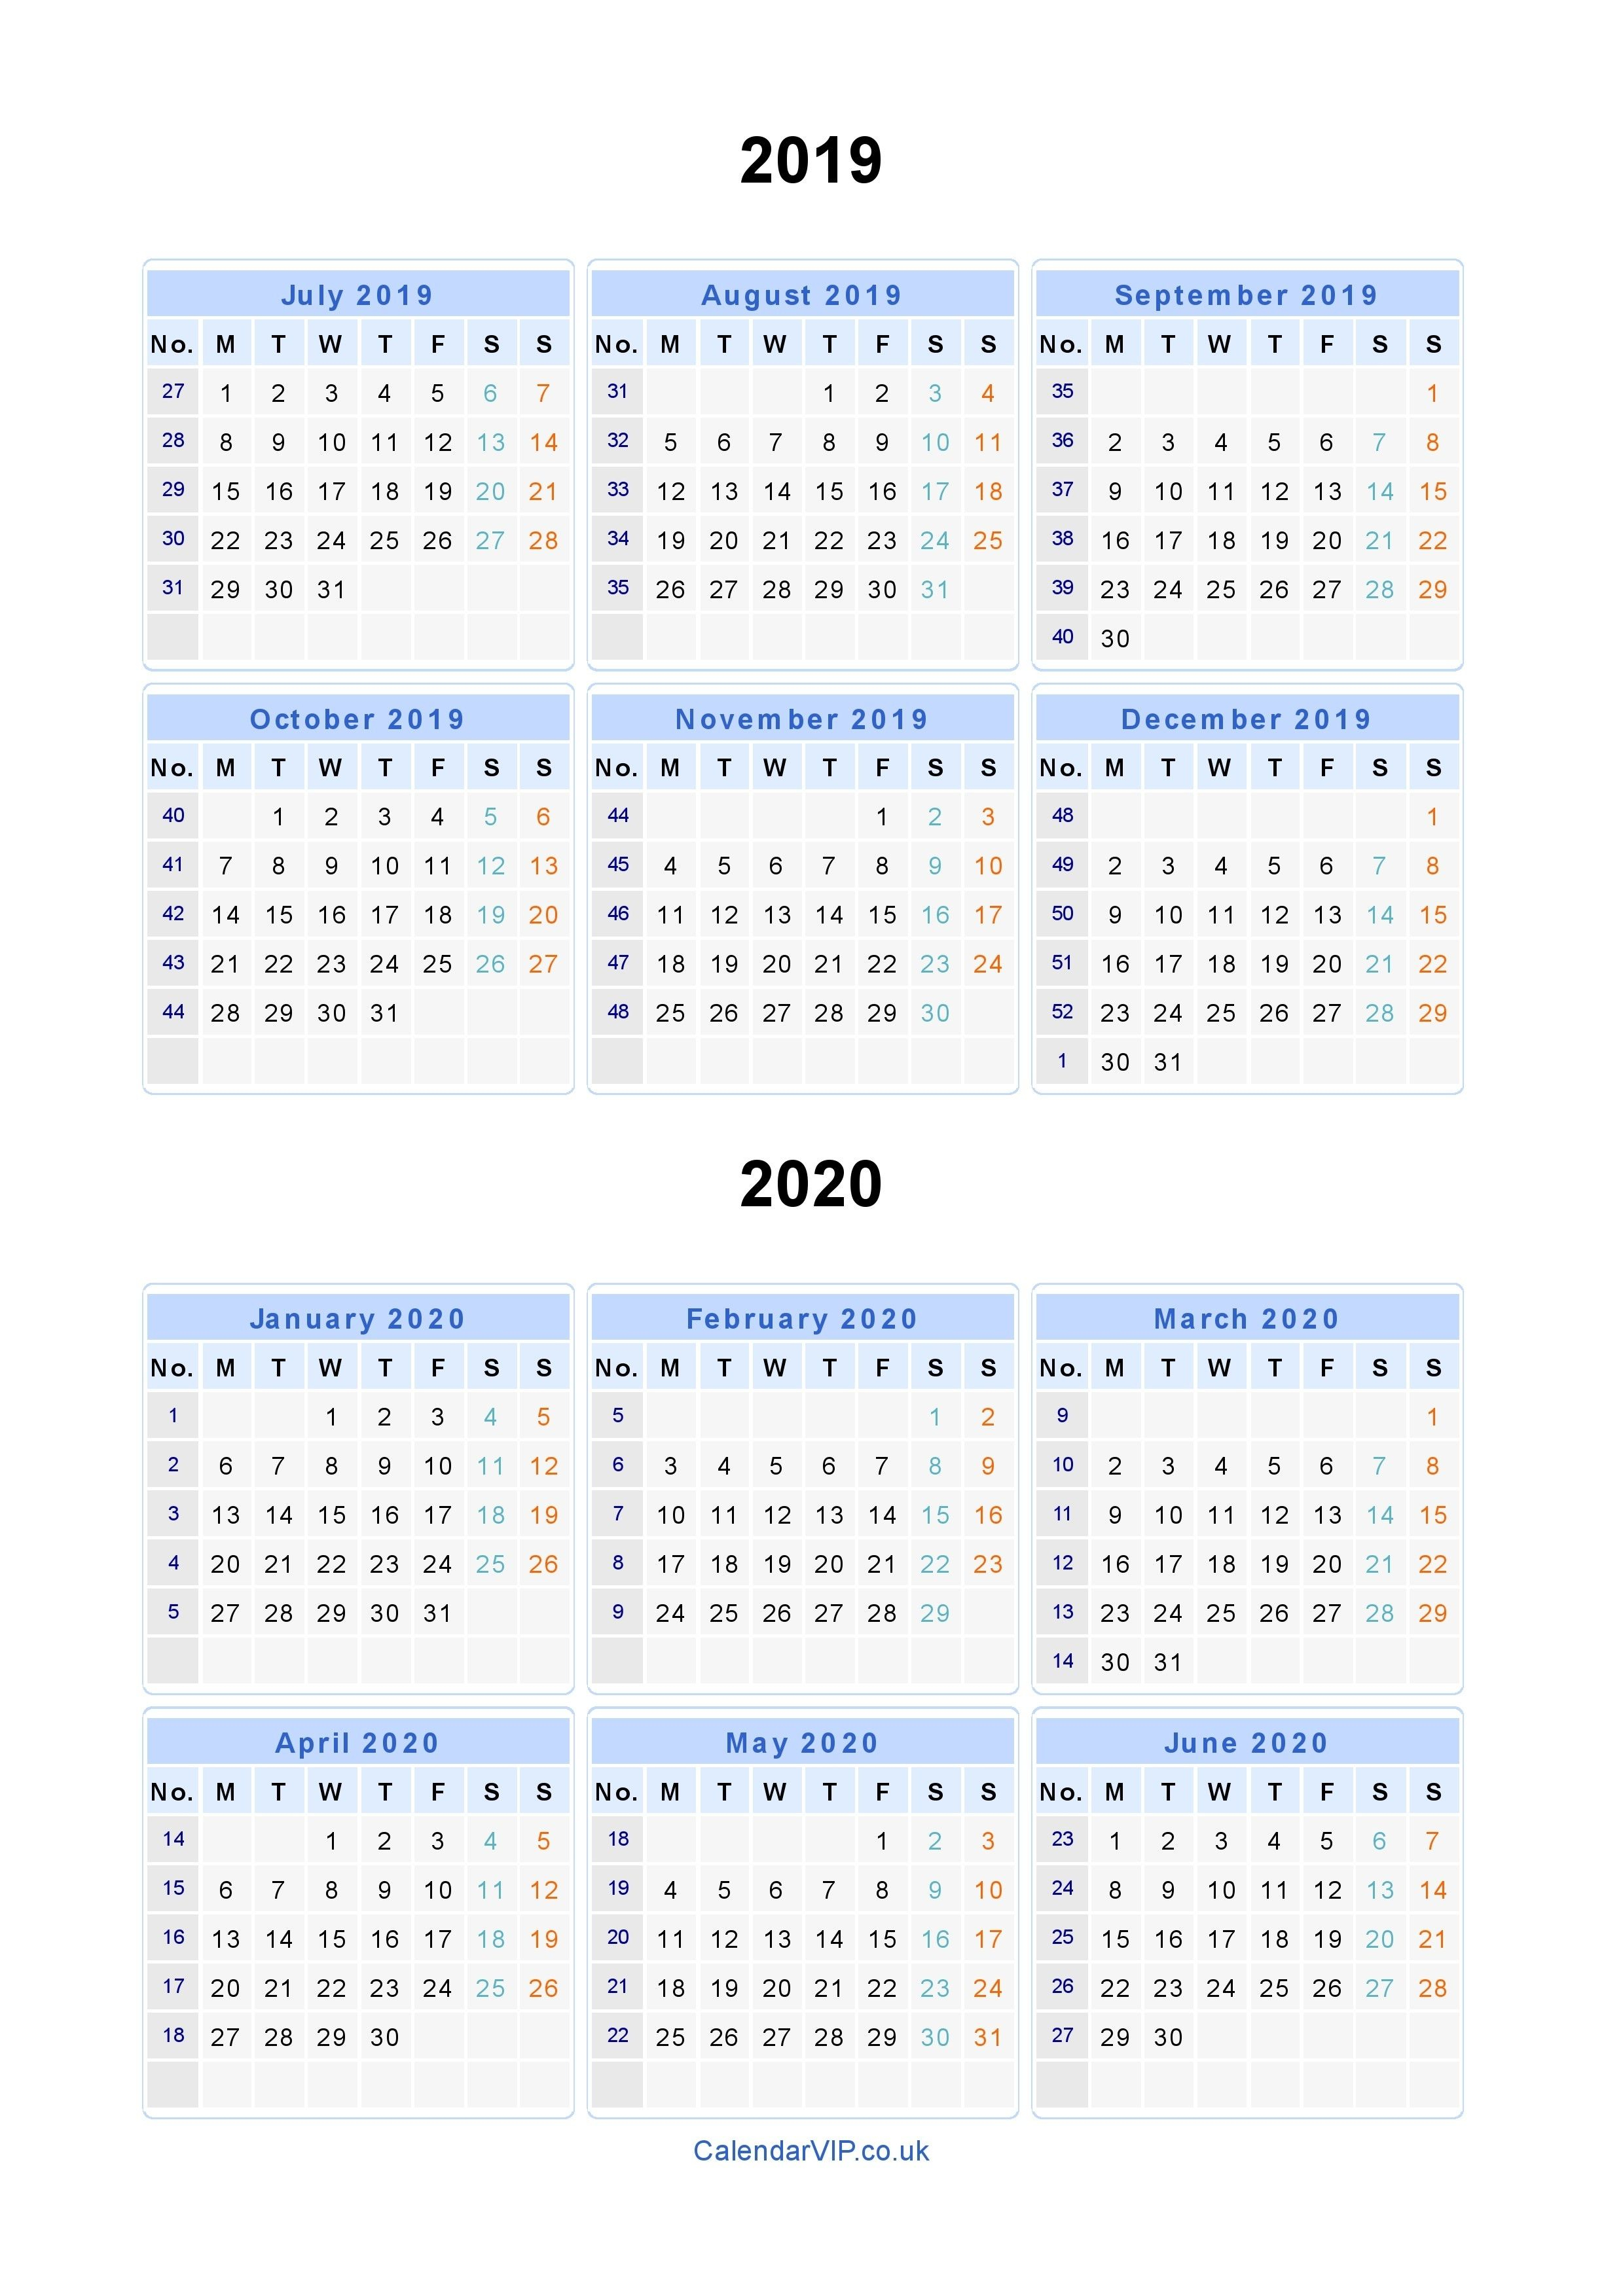 Split Year Calendars 2019 2020 - Calendar From July 2019 To June in Calendar For Rest Of 2019 And 2020